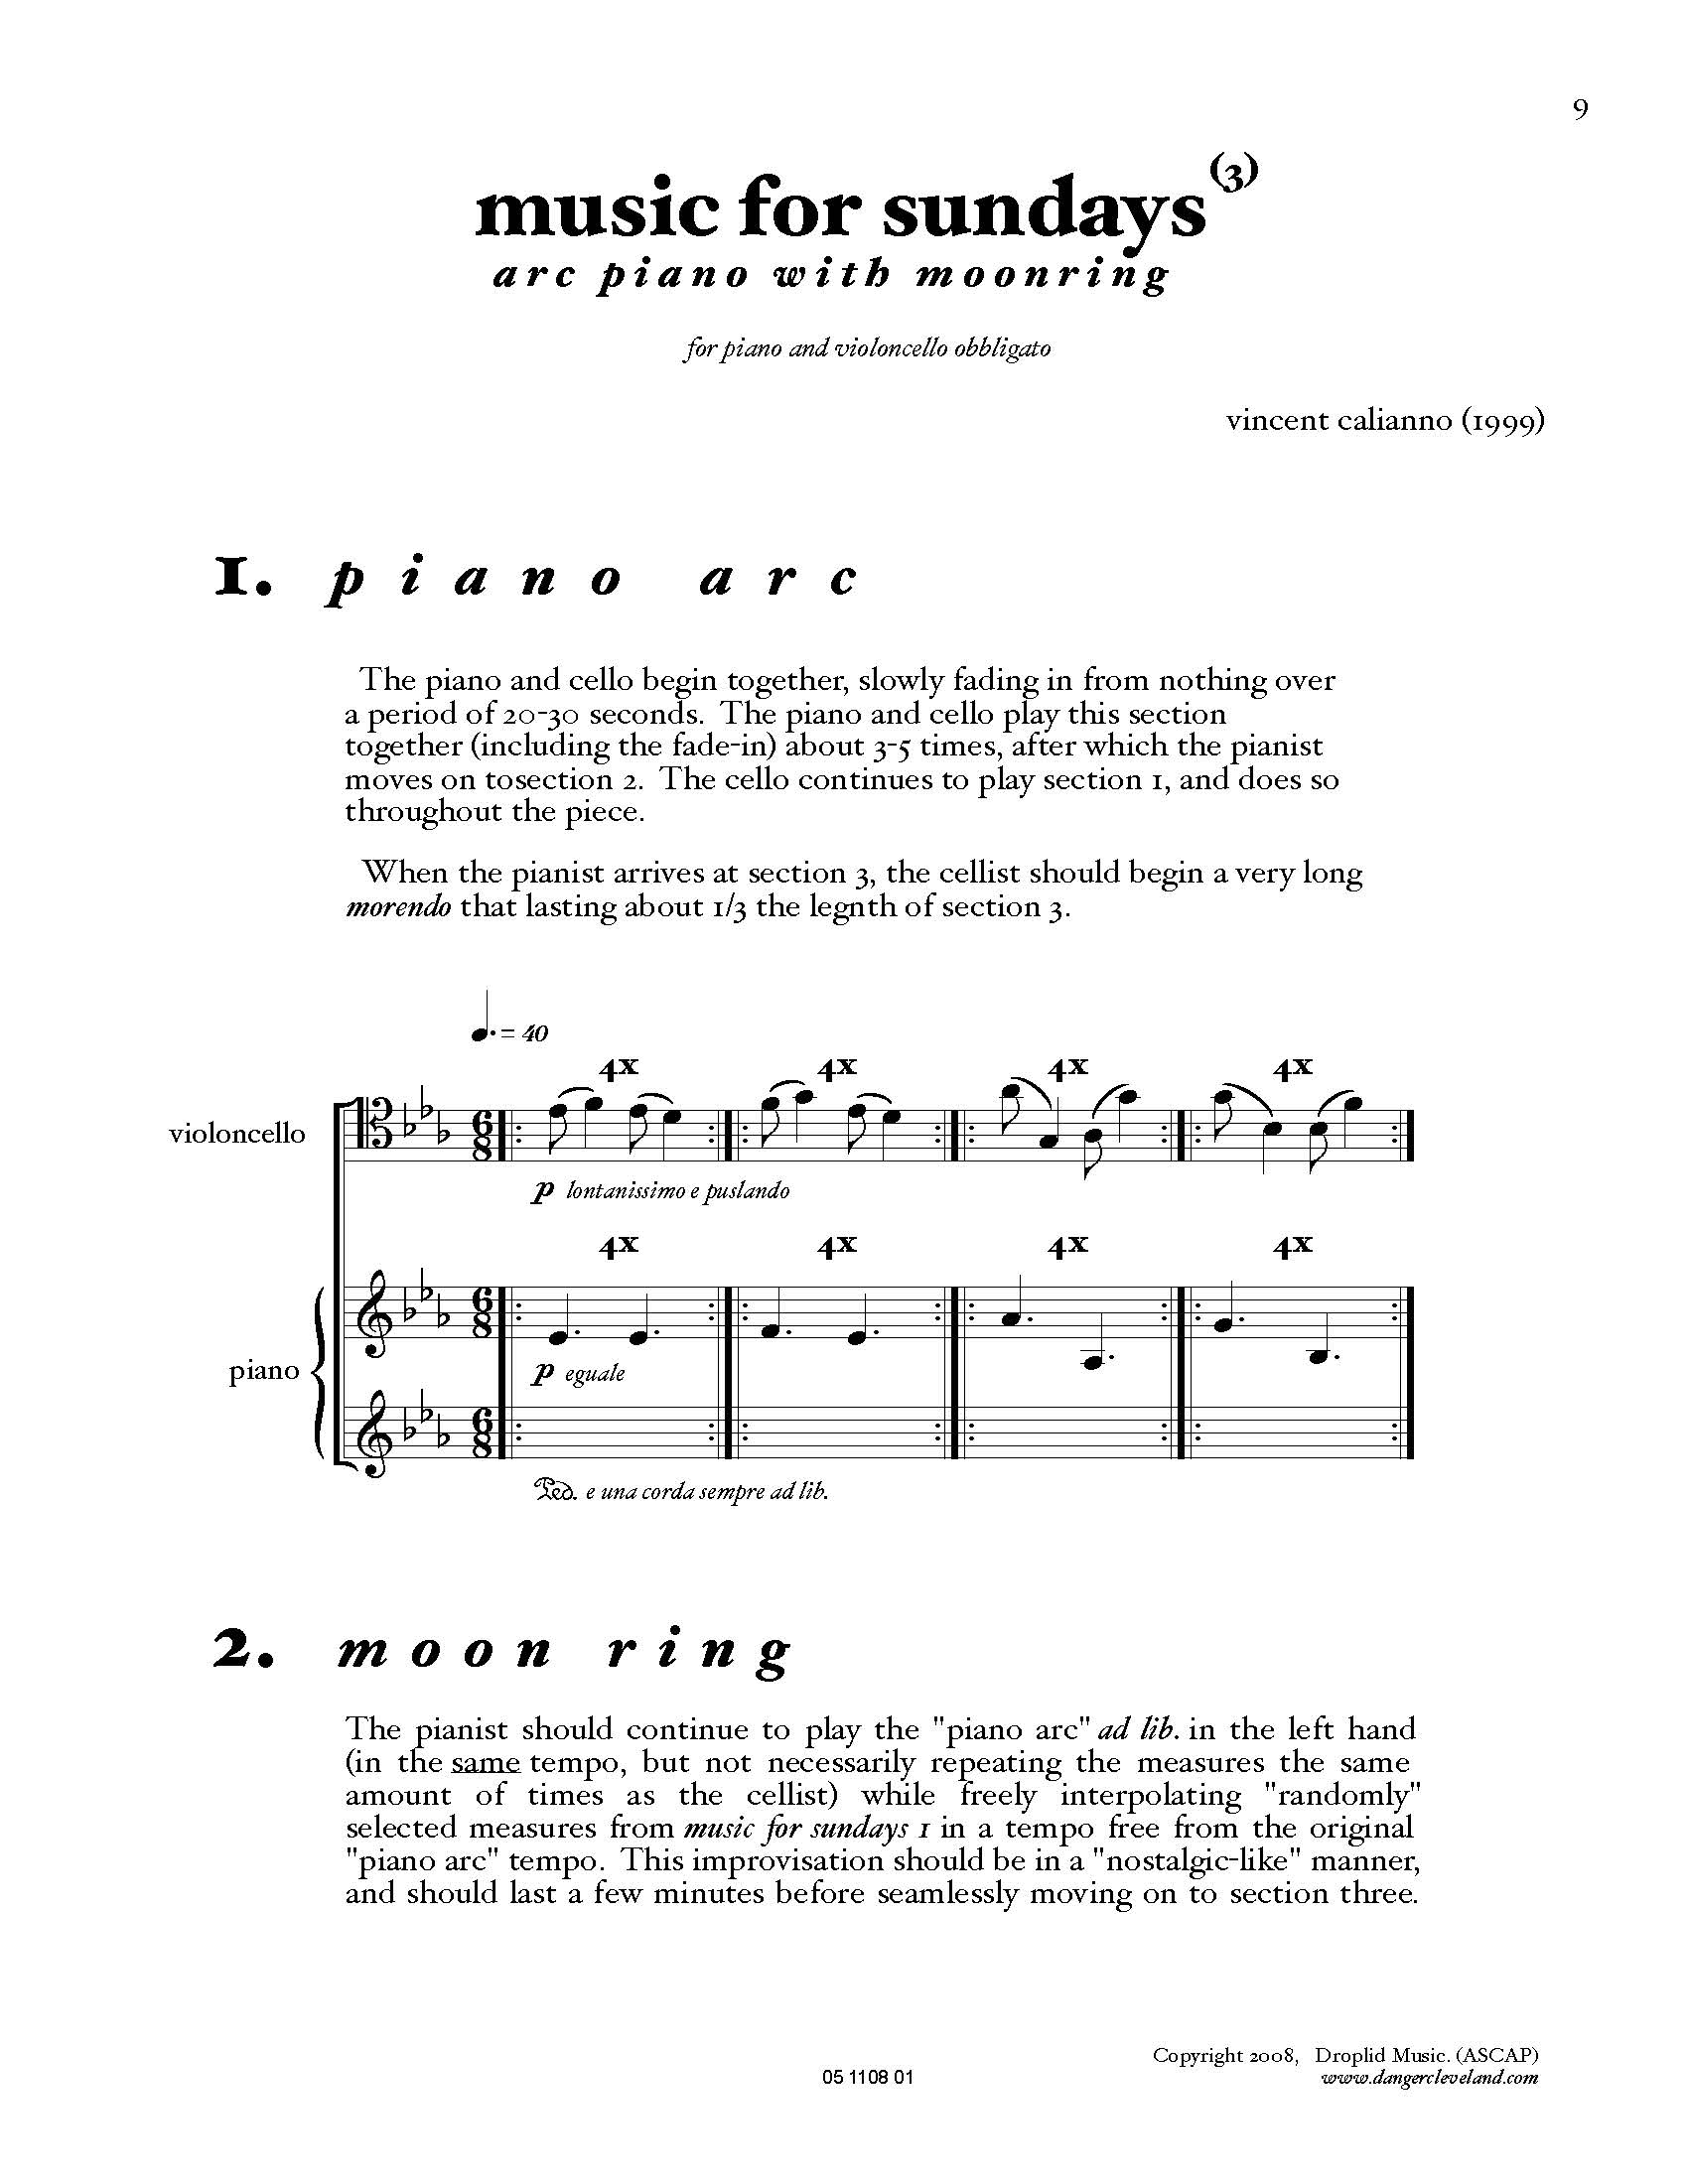 005-X1 Piano Pieces_Page_15.jpg